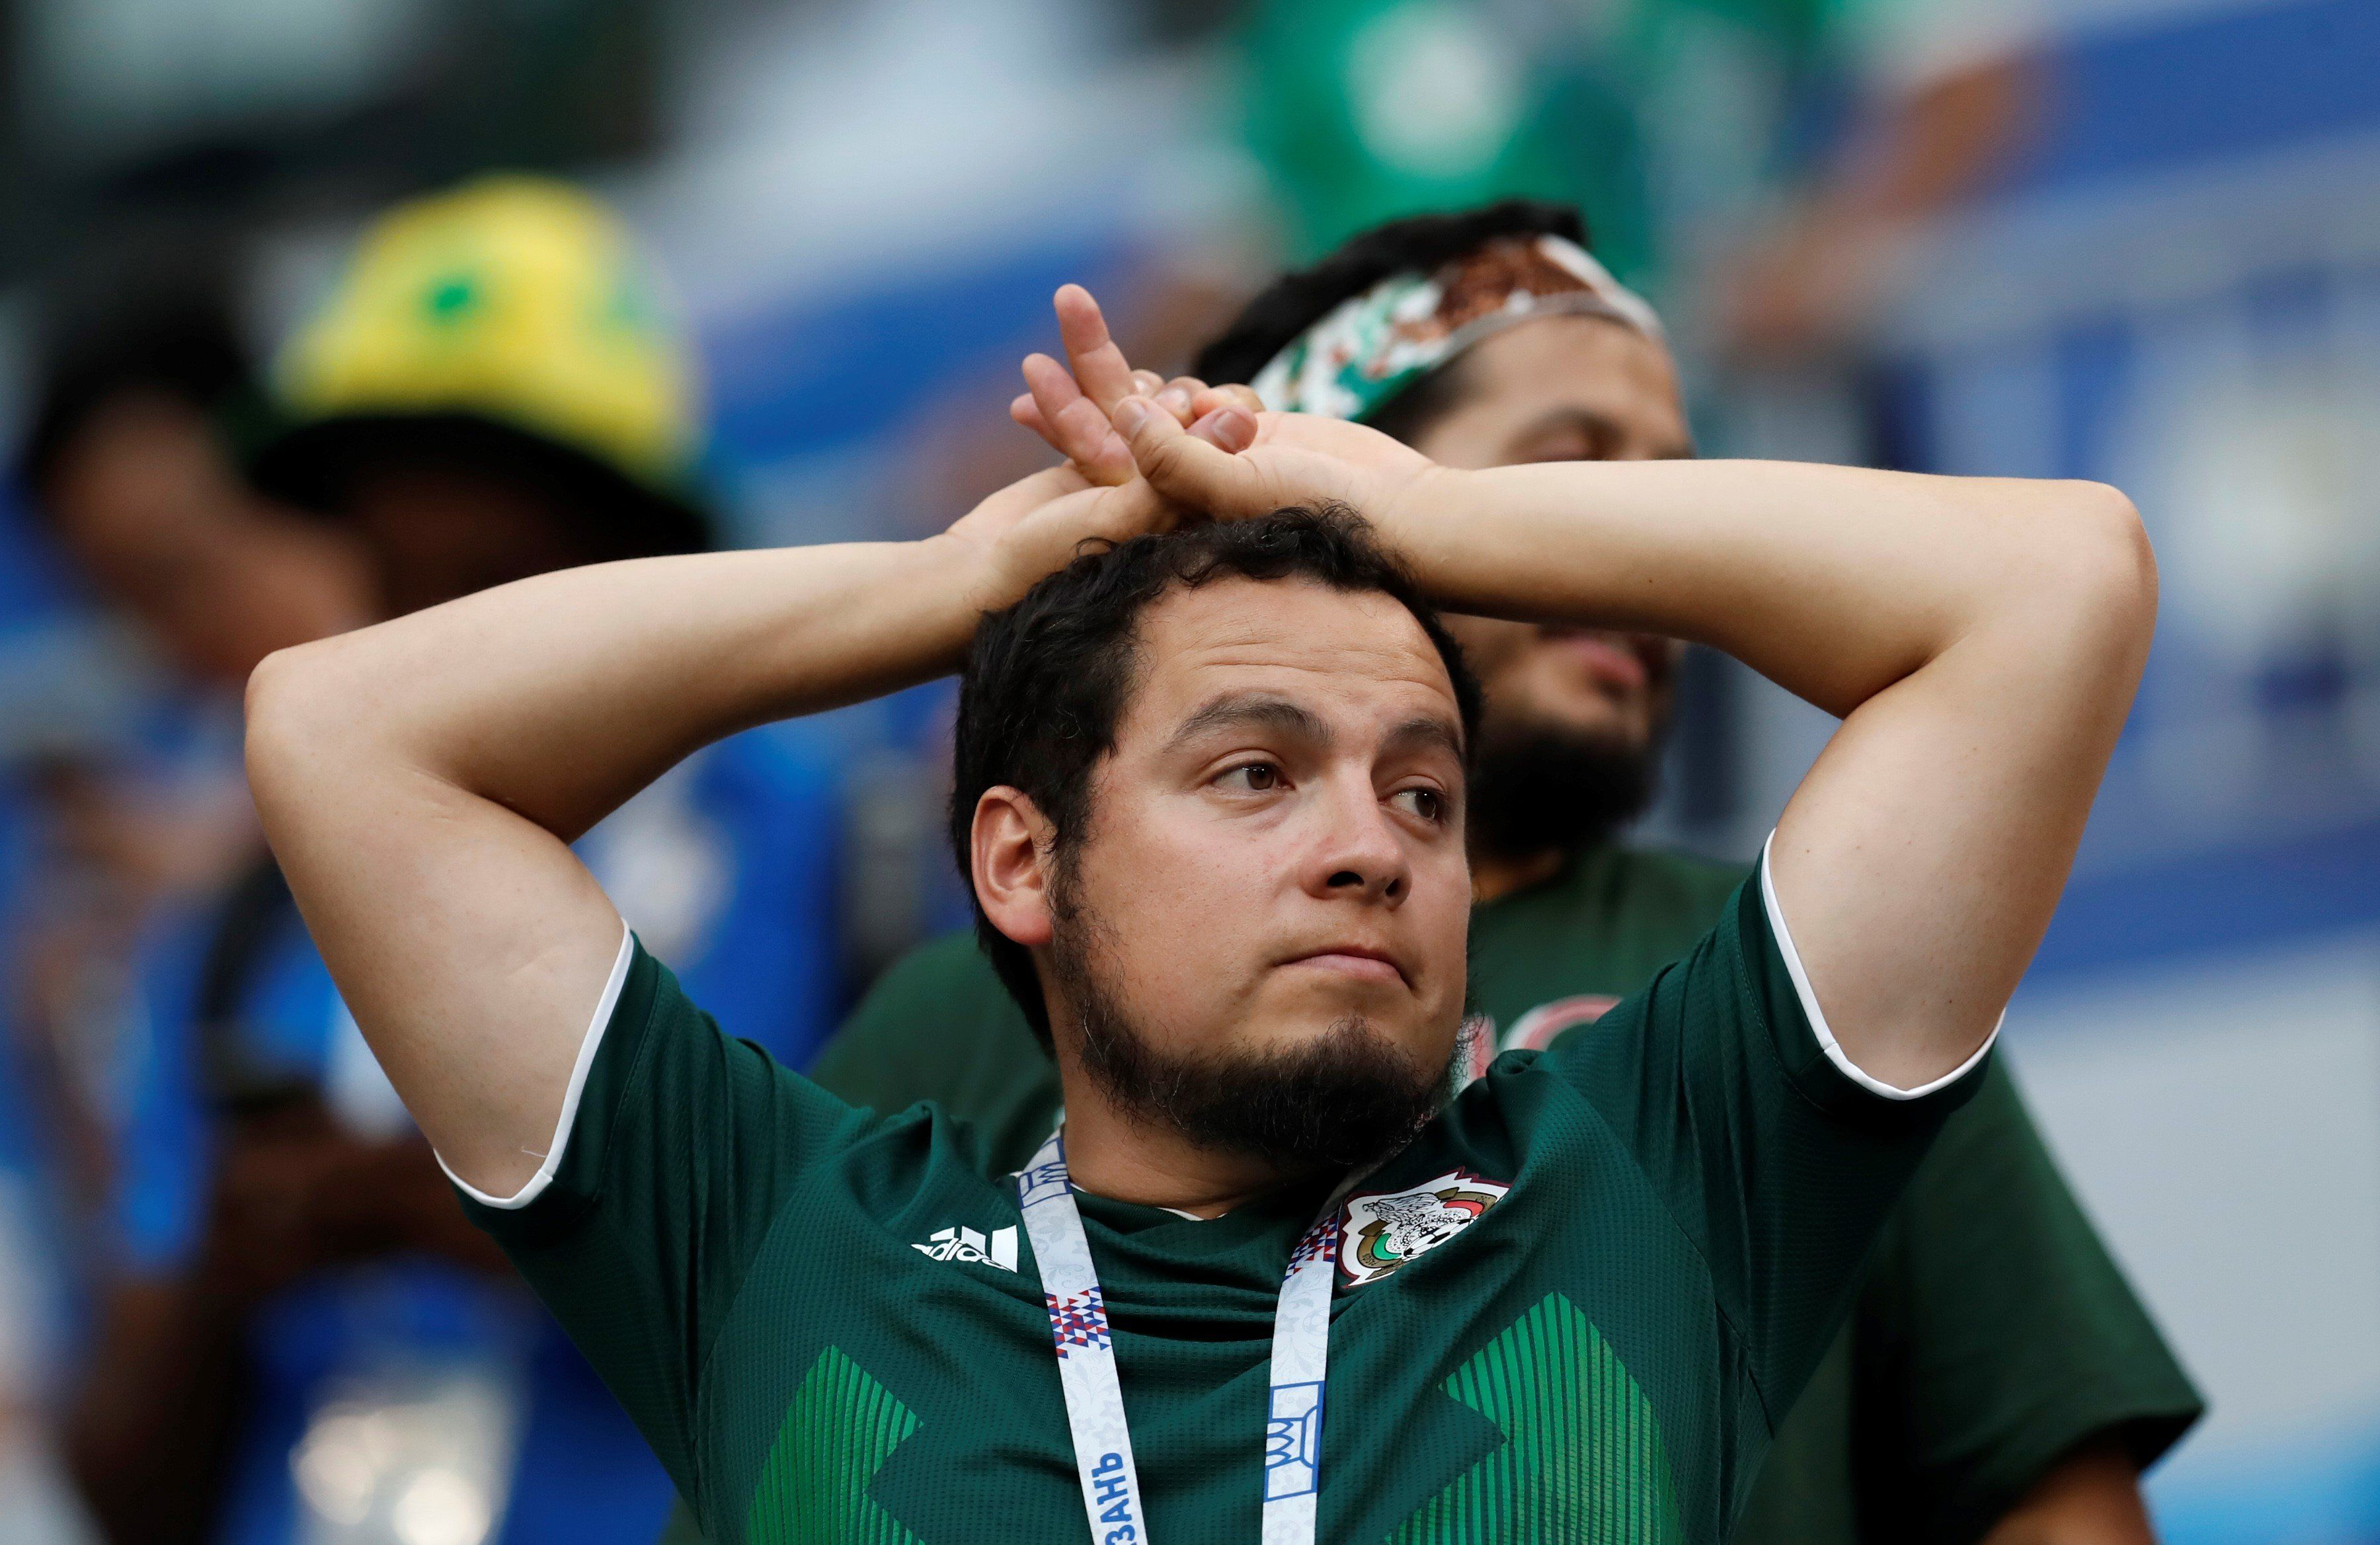 SAMARA, RUSSIA - JULY 02: A fan of Mexico gestures after Brazil wins the 2018 FIFA World Cup Russia Round of 16 match between against Mexico at the Samara Arena Stadium in Samara, Russia on July 02, 2018. (Photo by Fatih Aktas/Anadolu Agency/Getty Images)